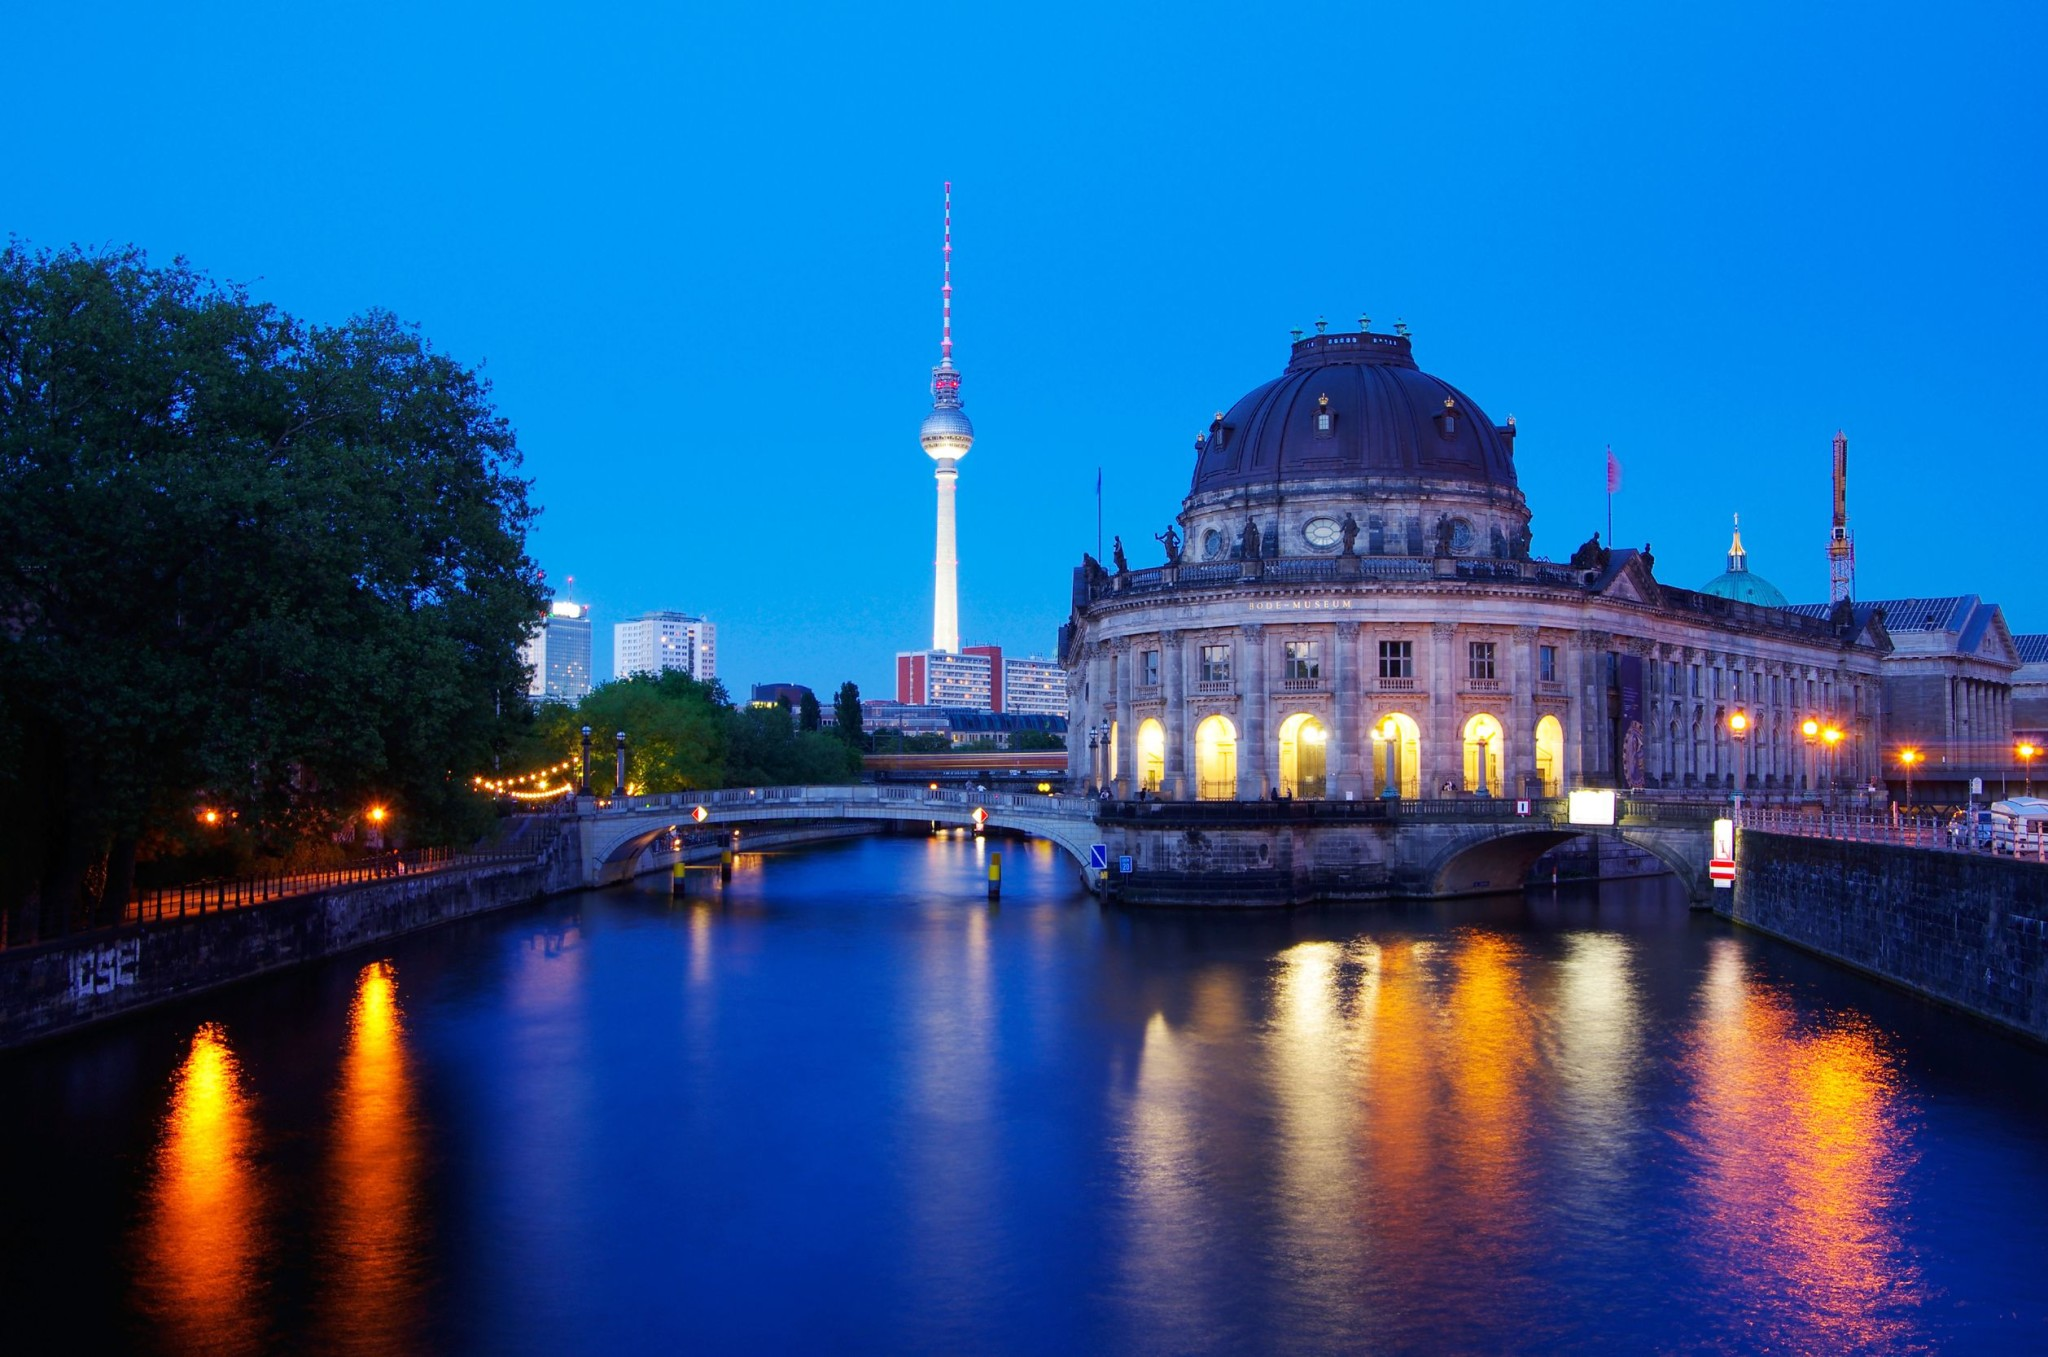 Museum Insula and Bode Museum in Berlin